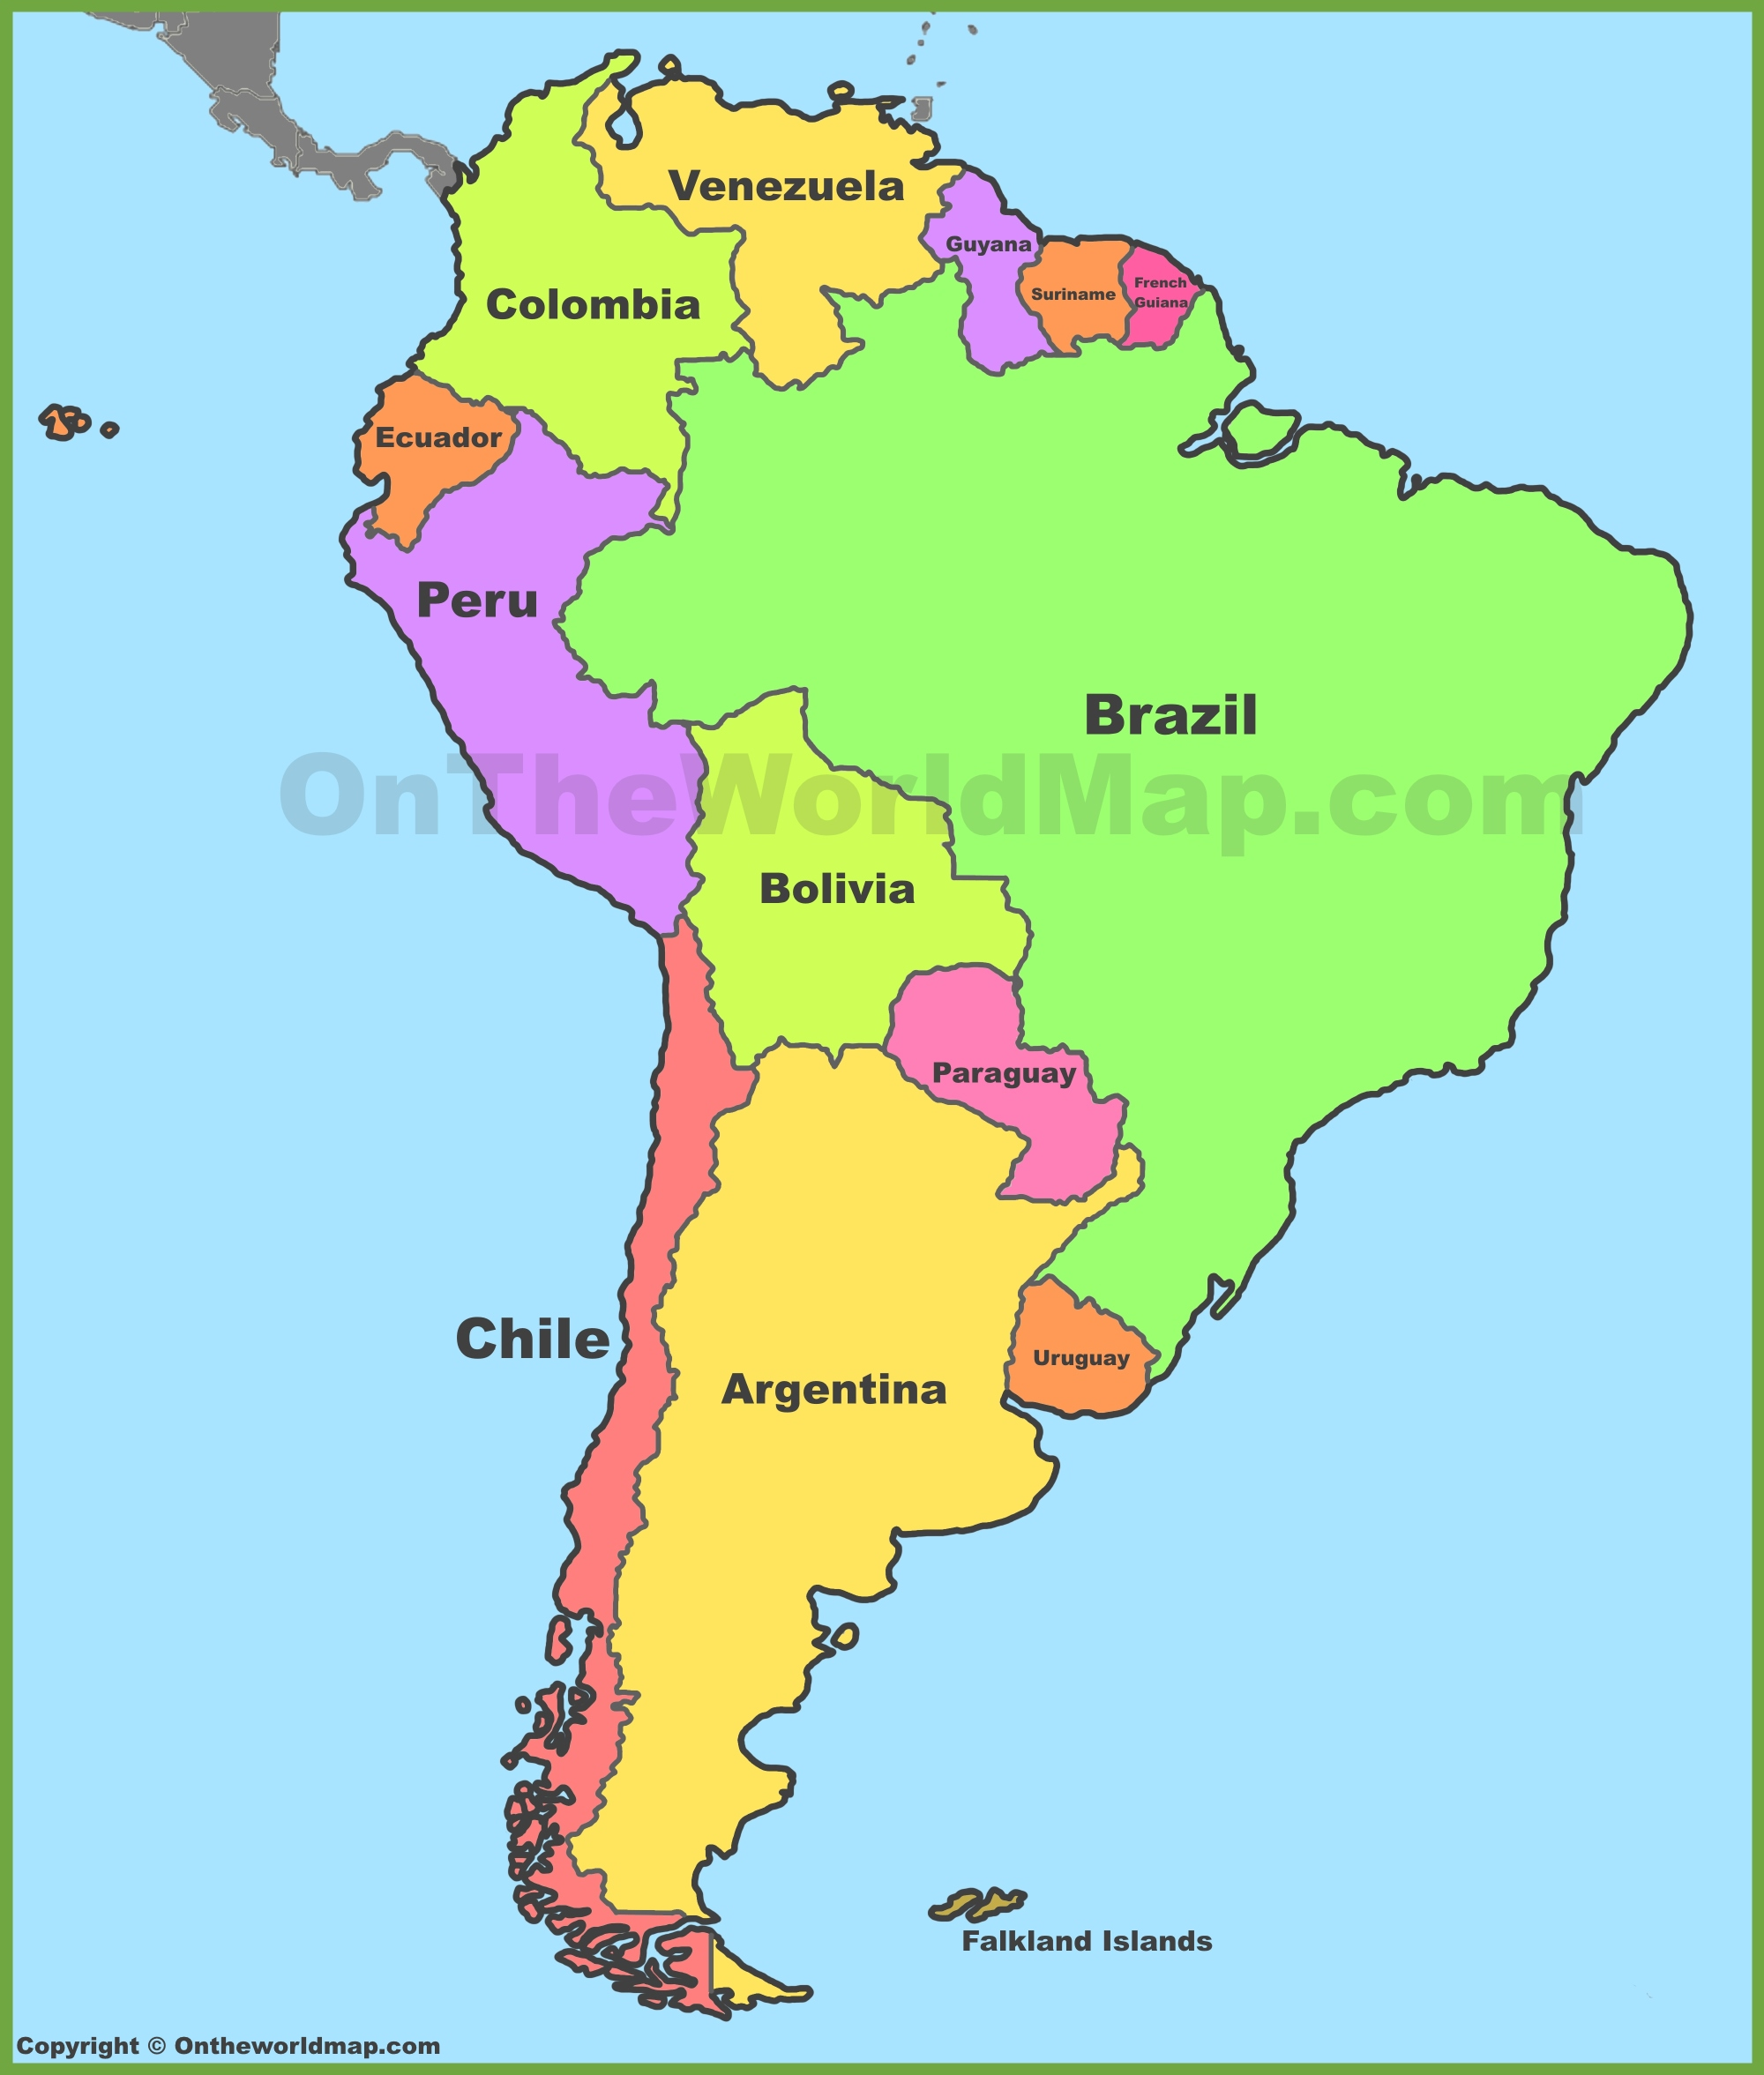 South America Maps Maps Of South America OnTheWorldMapcom - Maps america